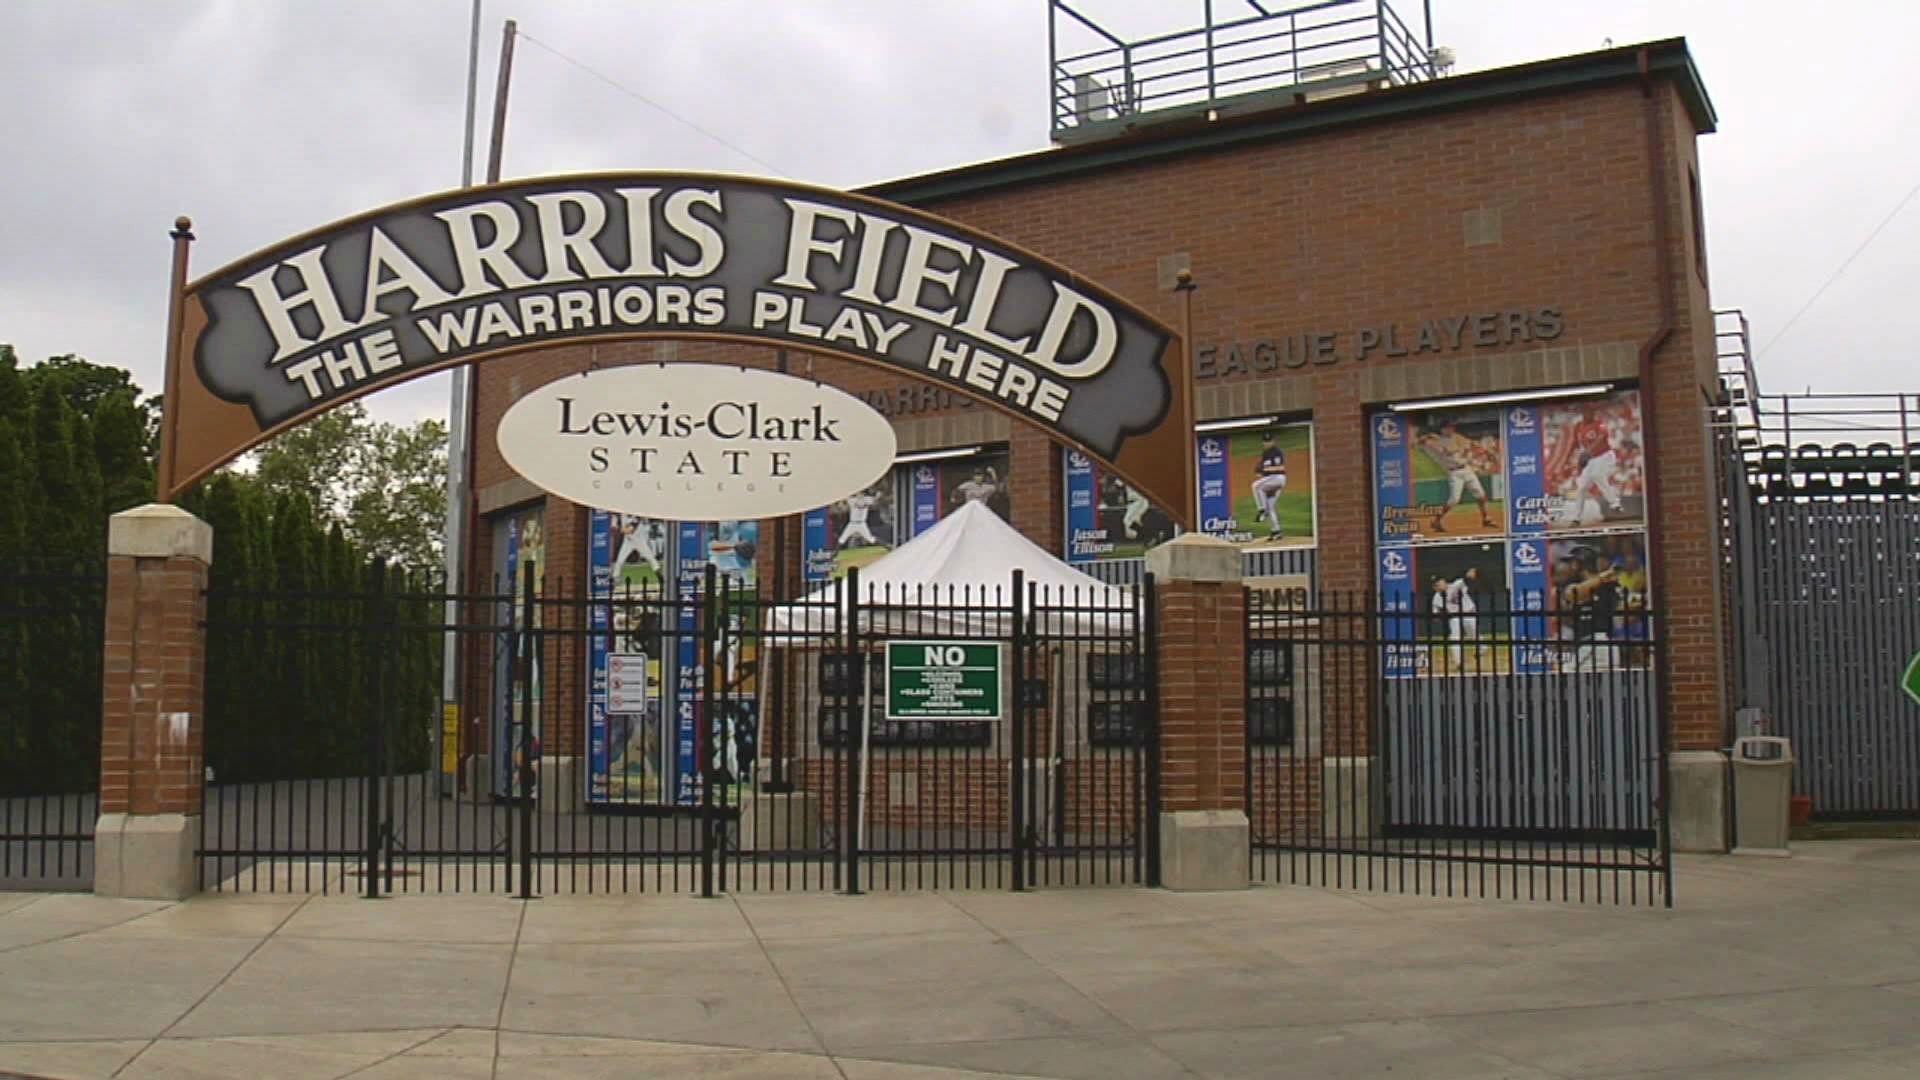 Harris Field will be the home of the NAIA World Series for the 16th straight year.